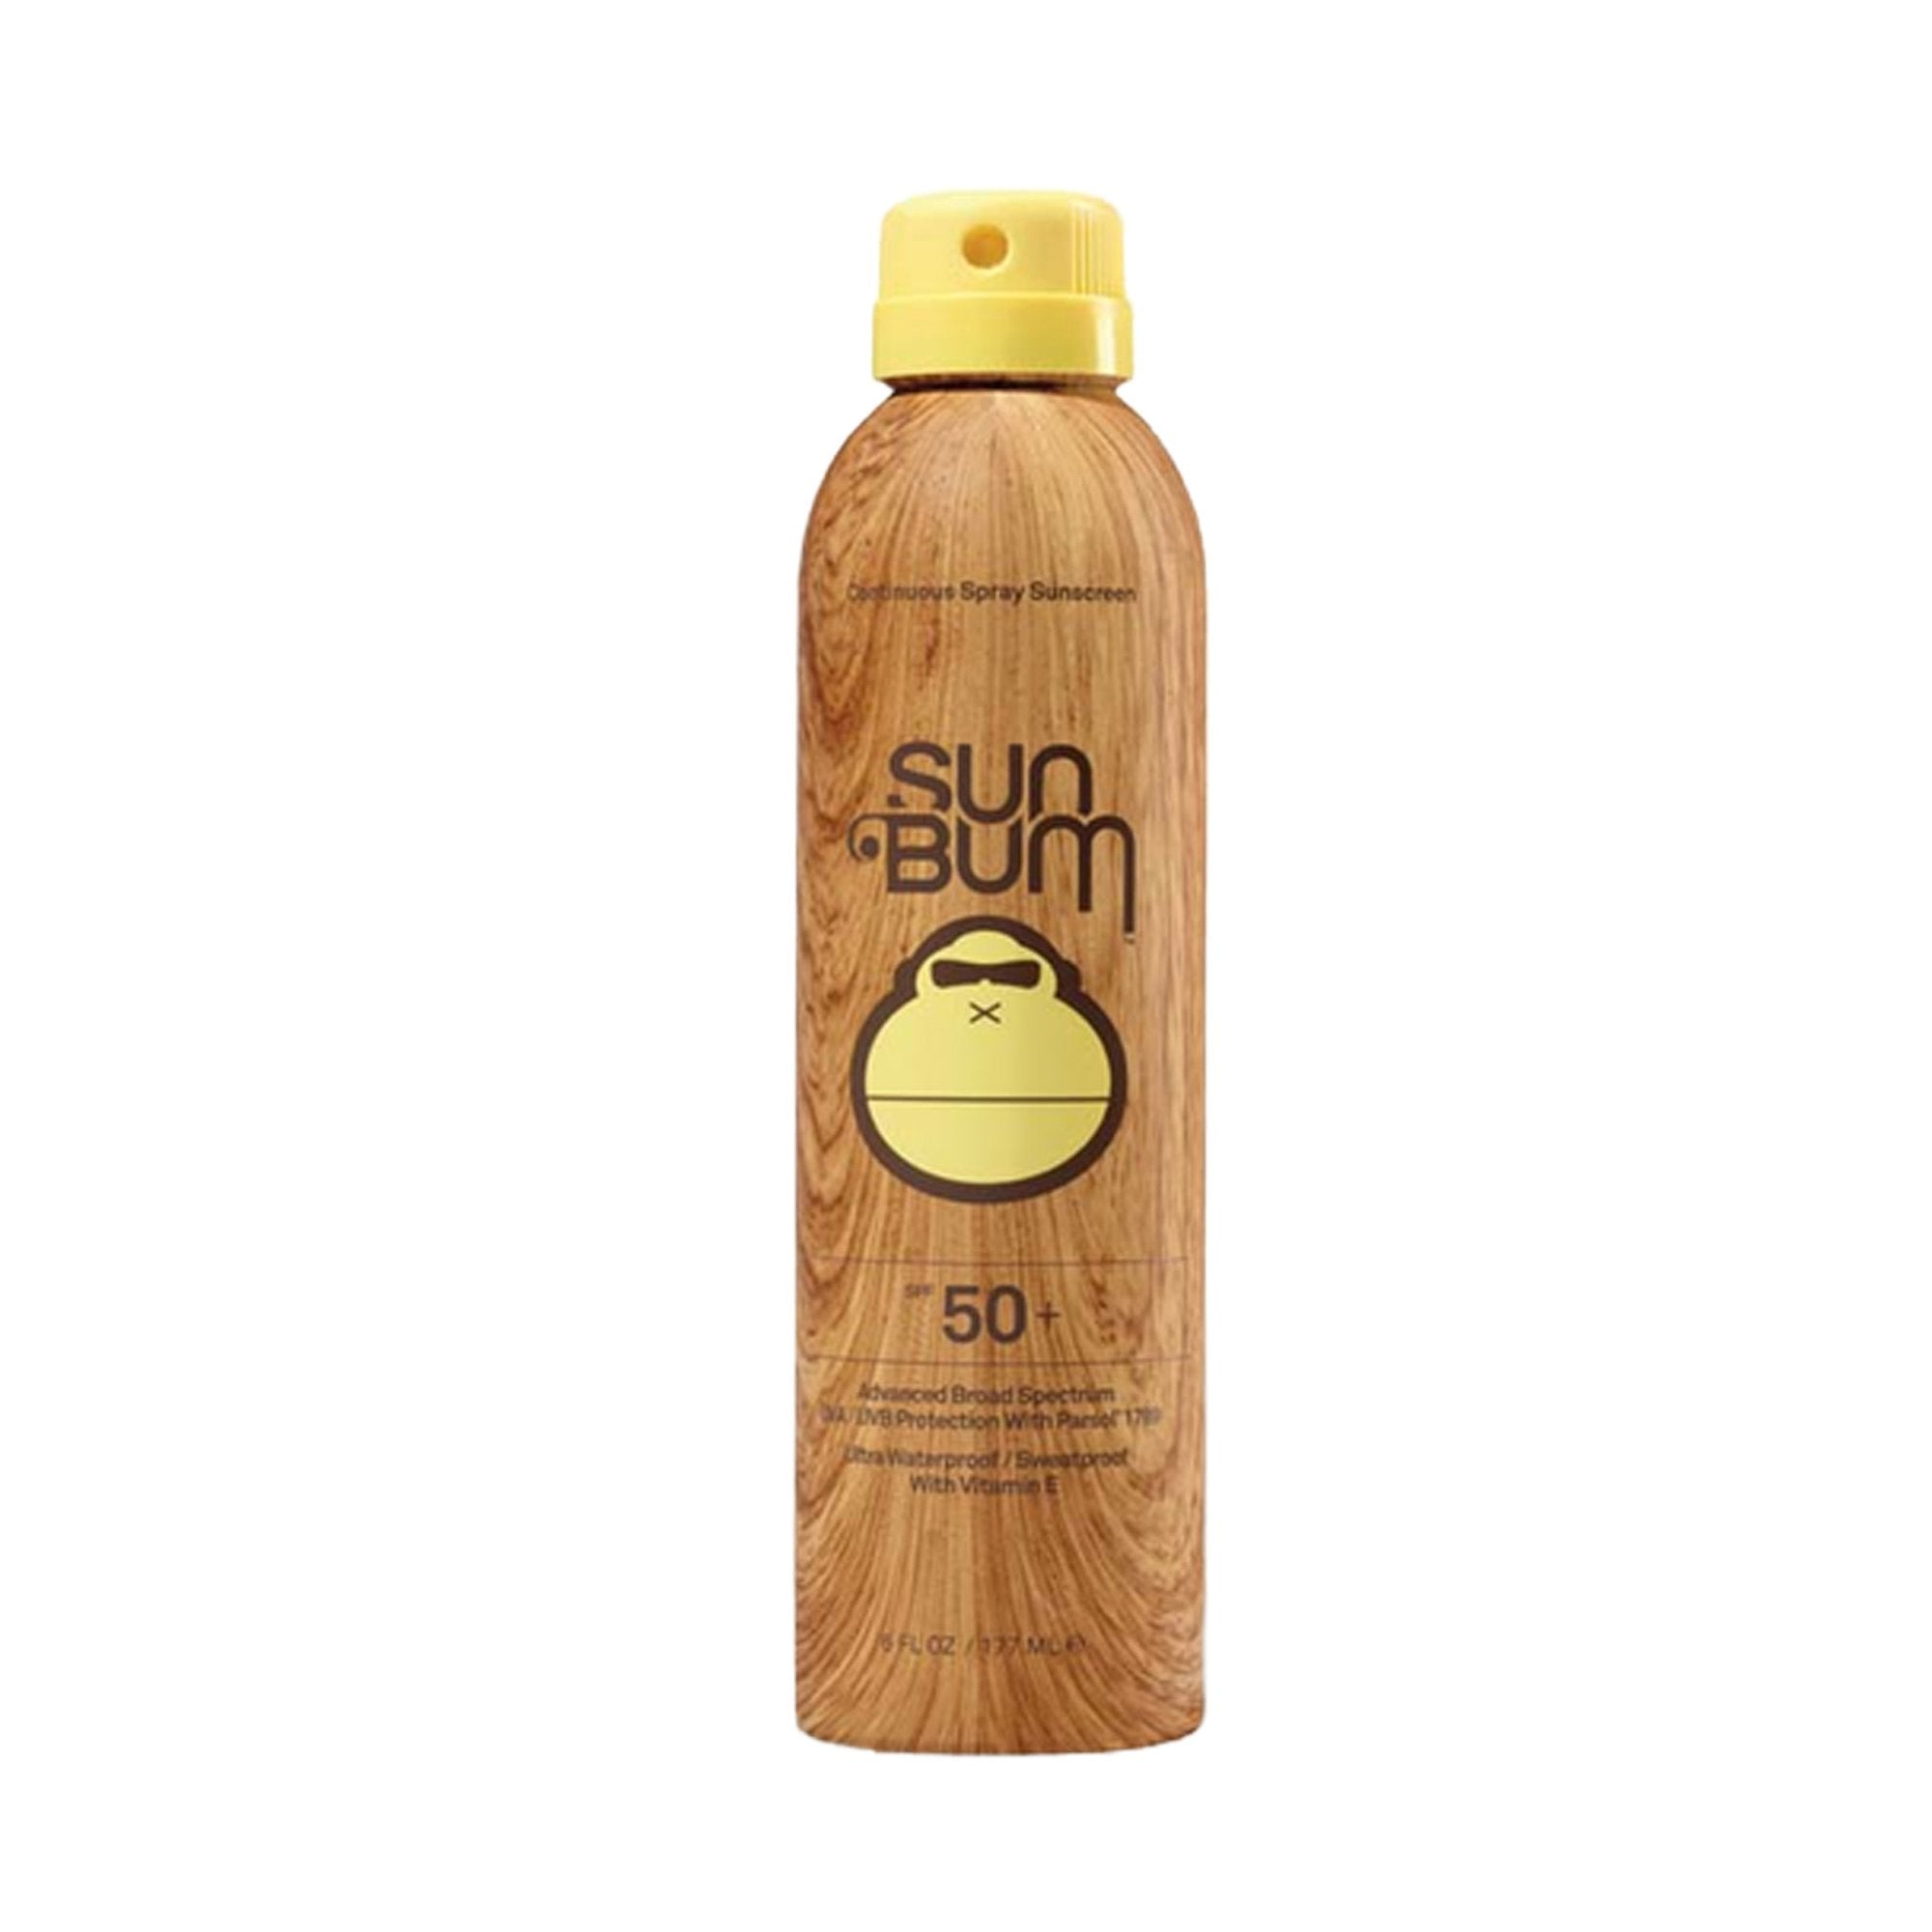 Sun Bum Continues Spray Sunscreen - SPF 50